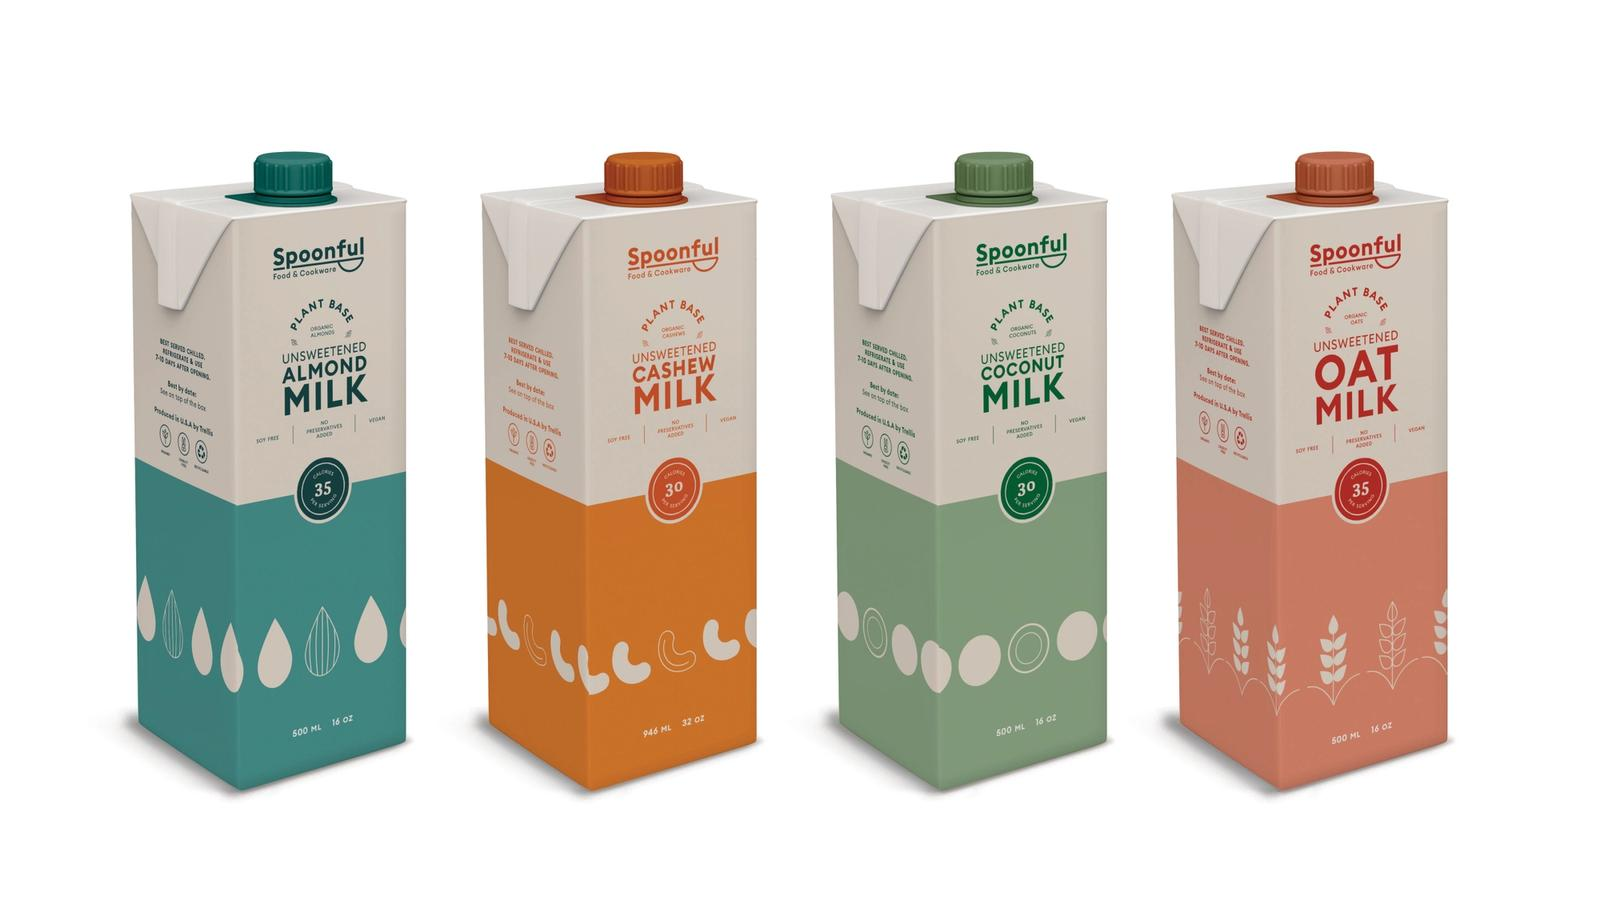 Spoonful Milk // Product Packaging